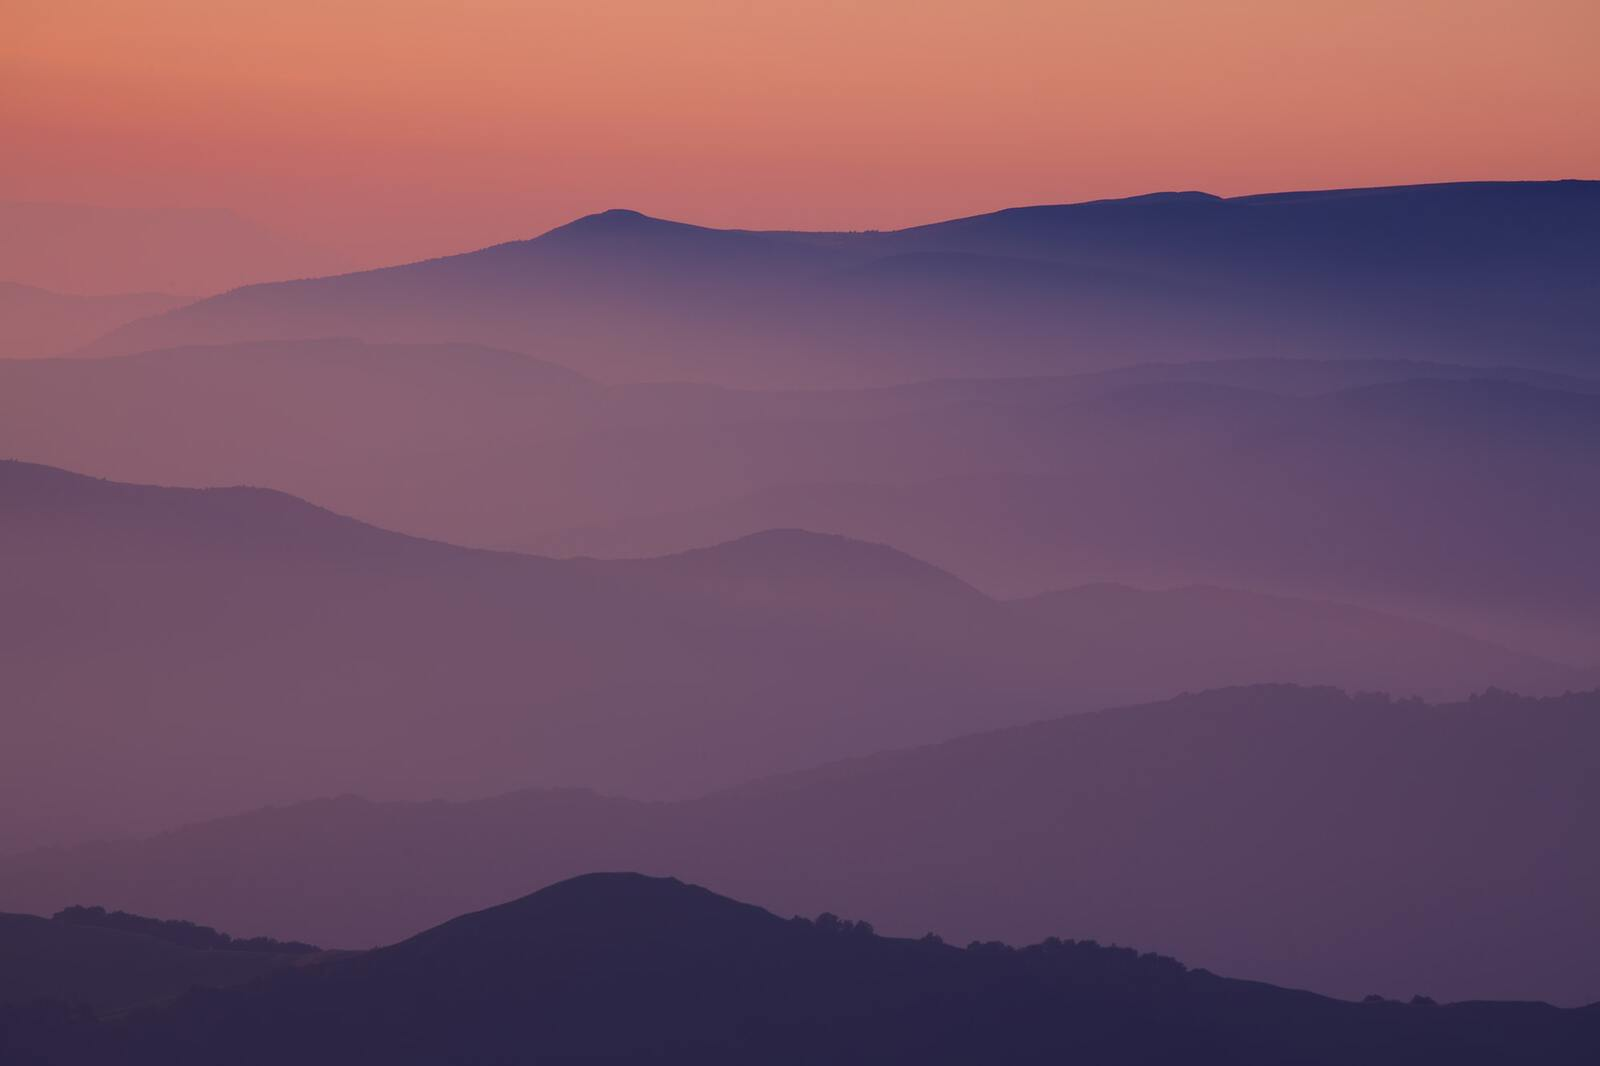 Silhouettes of the mountain hills at sunset